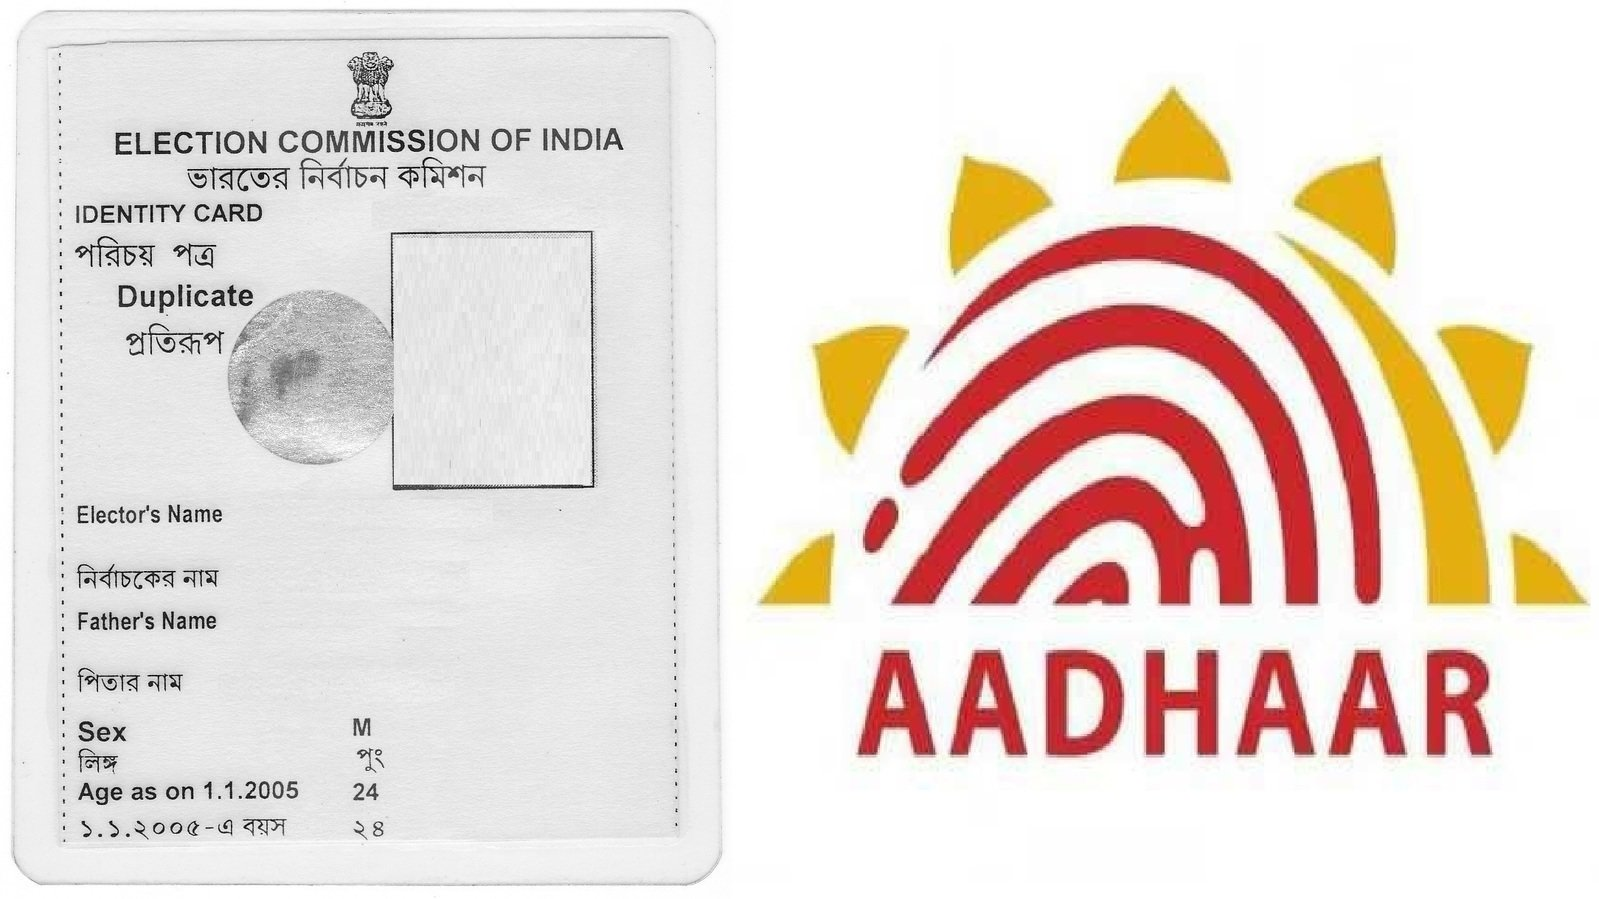 Petition · Link Voter Id Card with Aadhar Card in India · Change.org